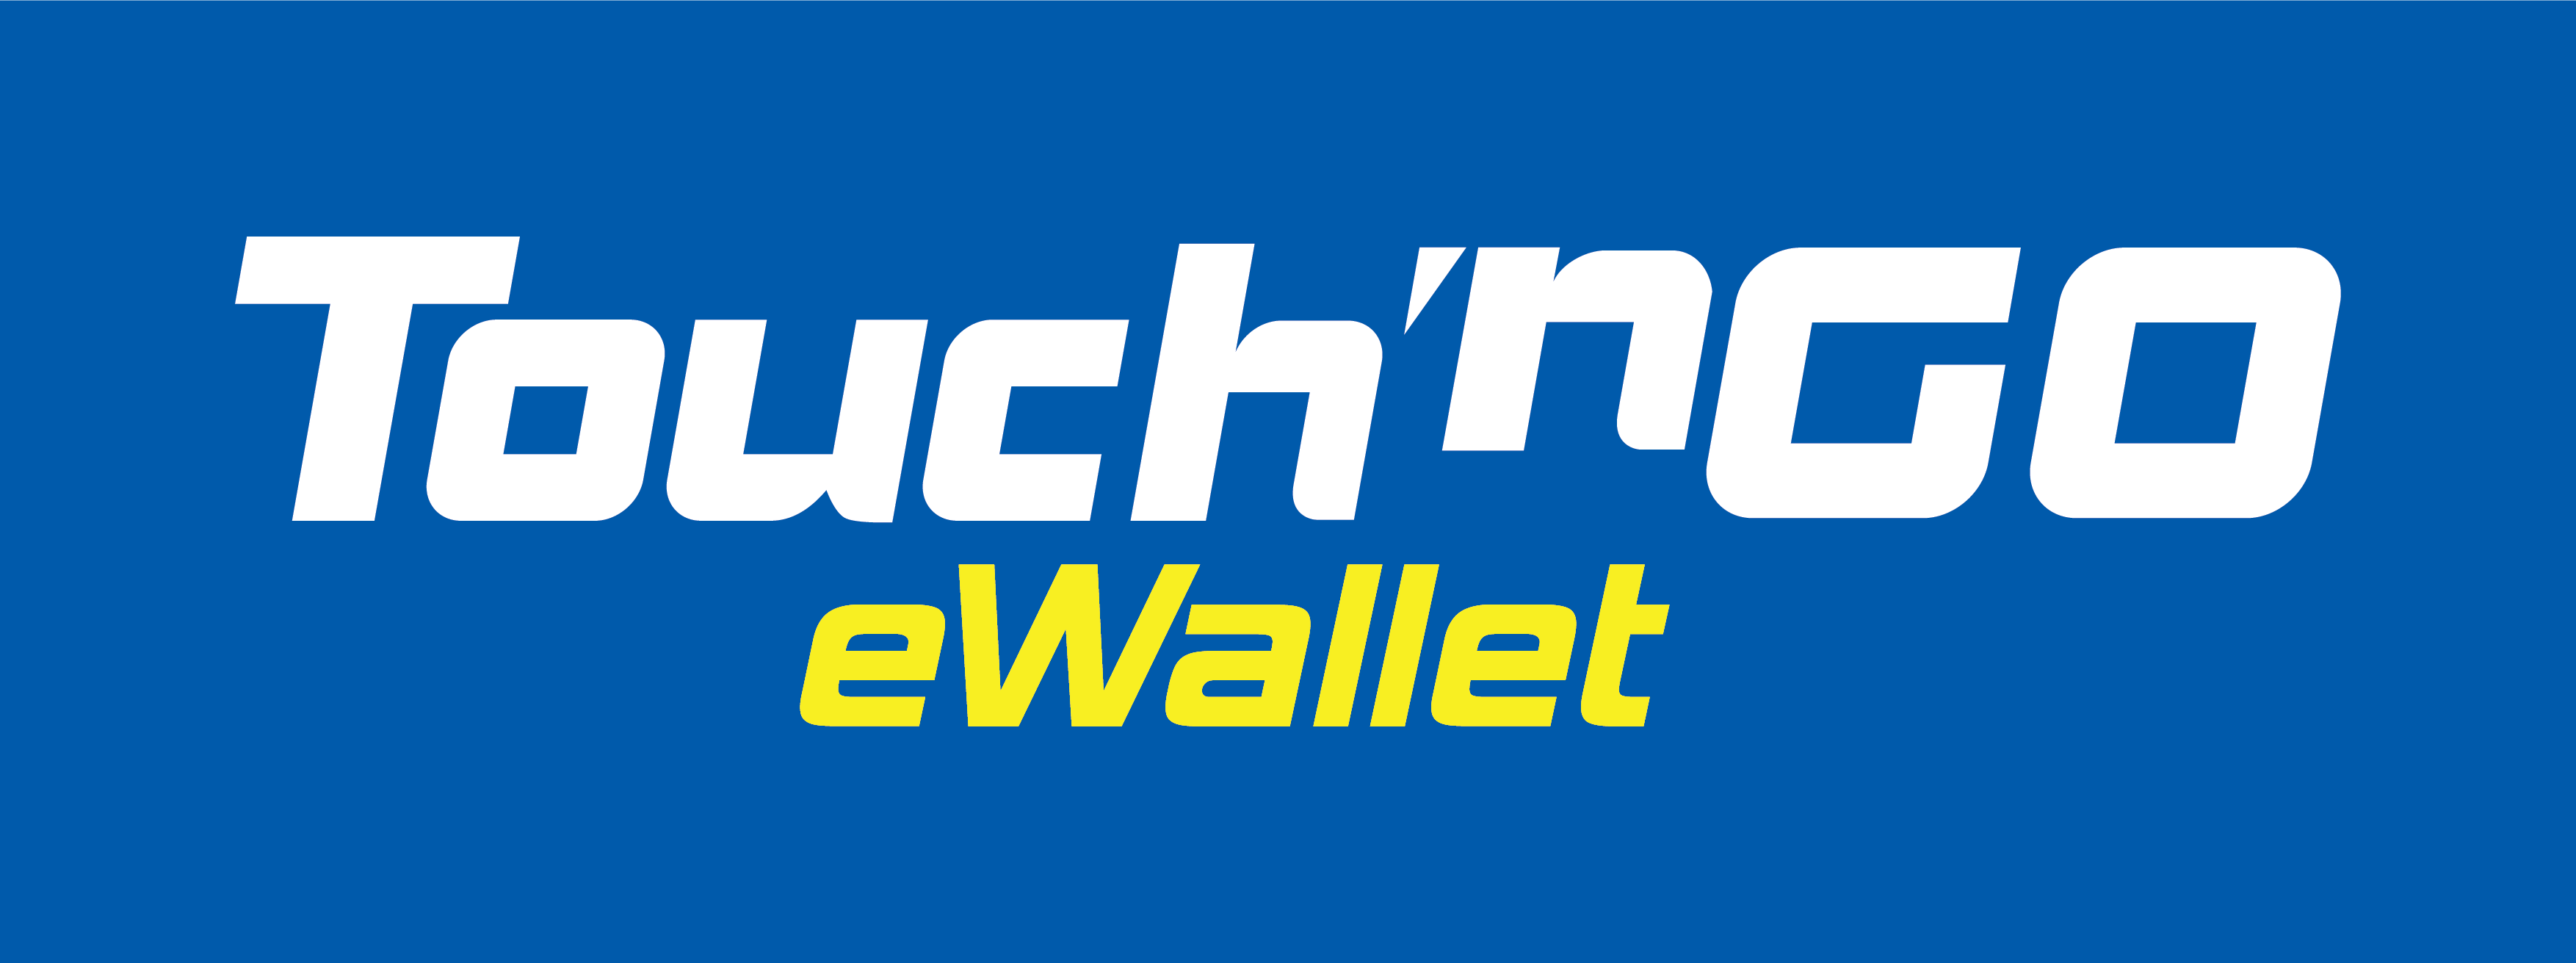 Touch 'n Go eWallet Promotions & Discounts